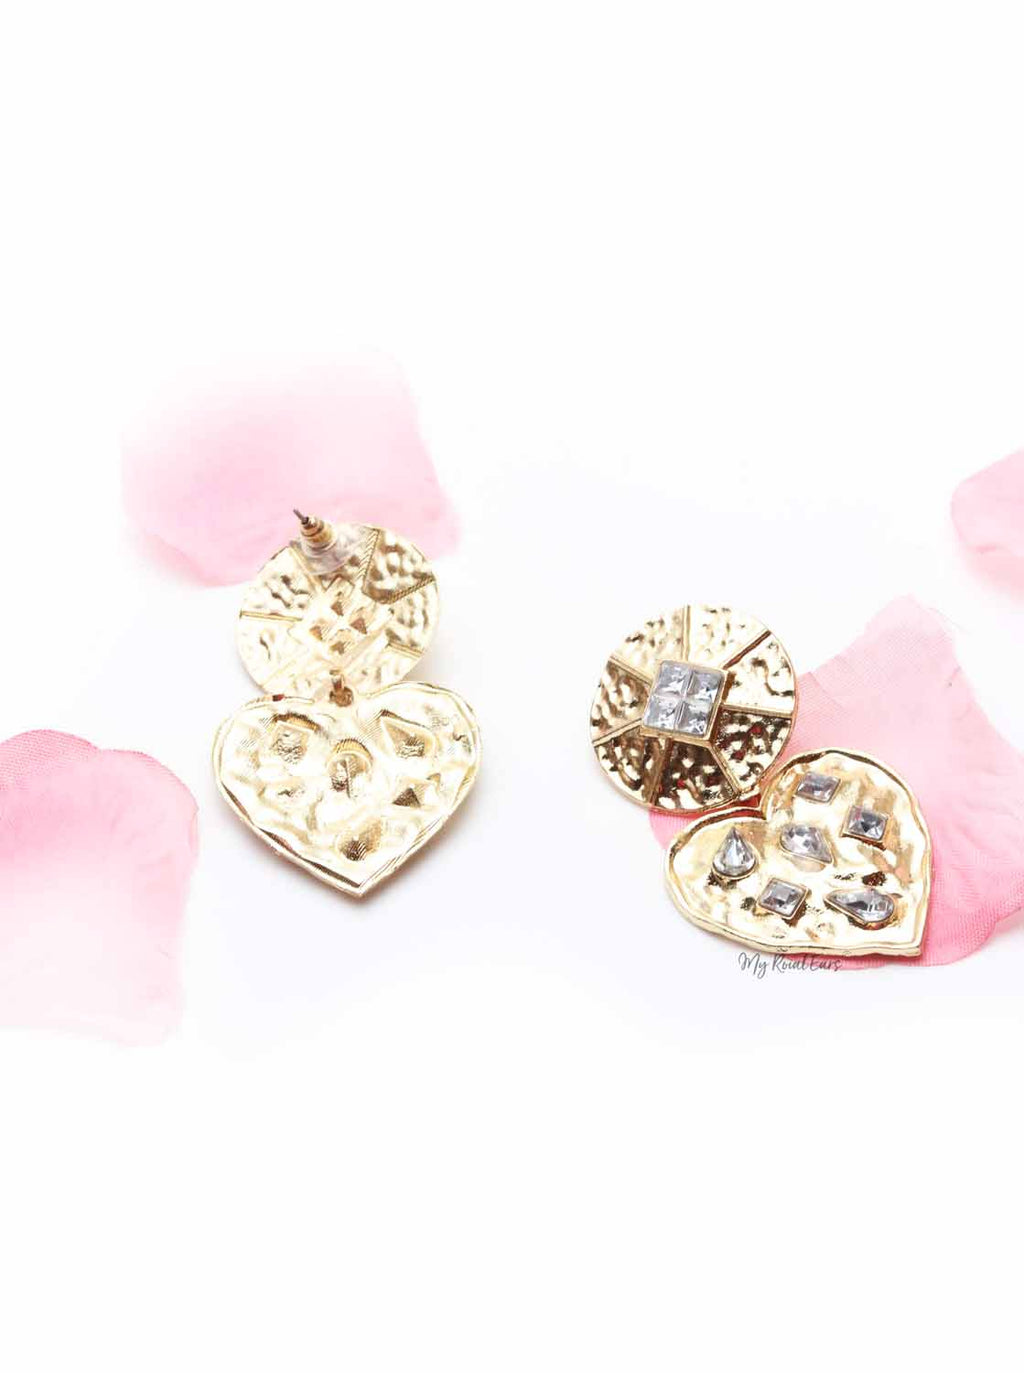 Cattleya- diamond embellished heart earrings - My Roial Ears LTD